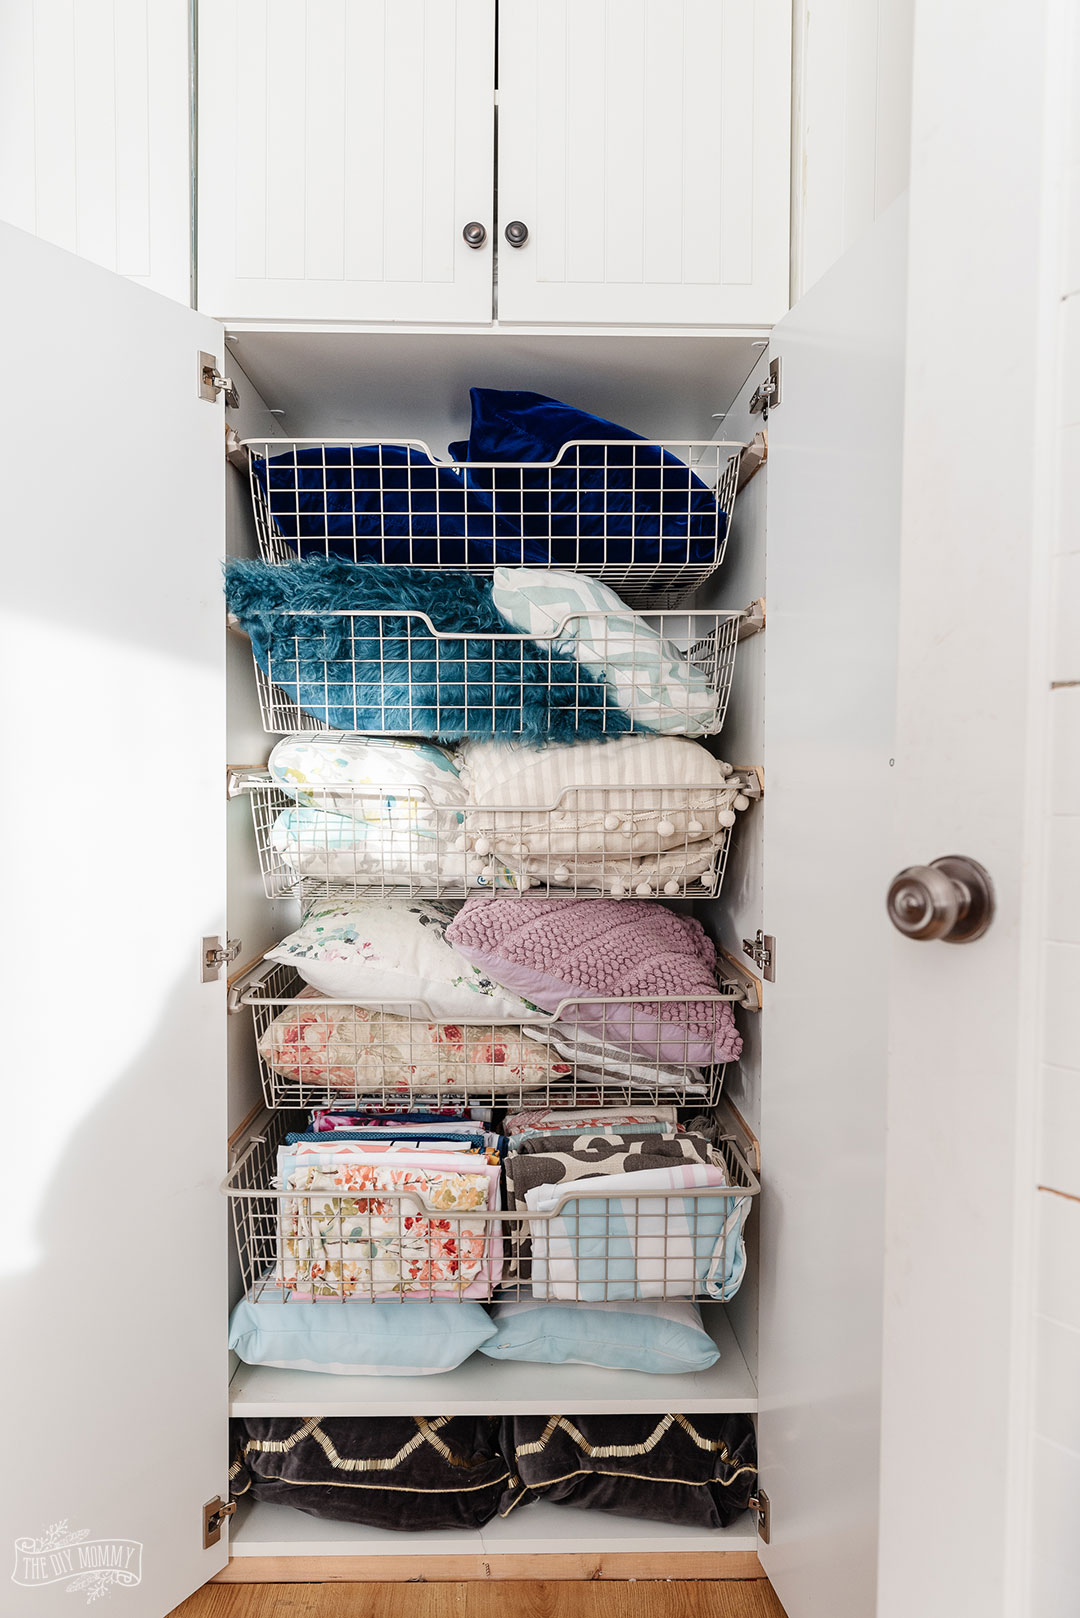 7 Simple & Practical Storage Room Organization Tips